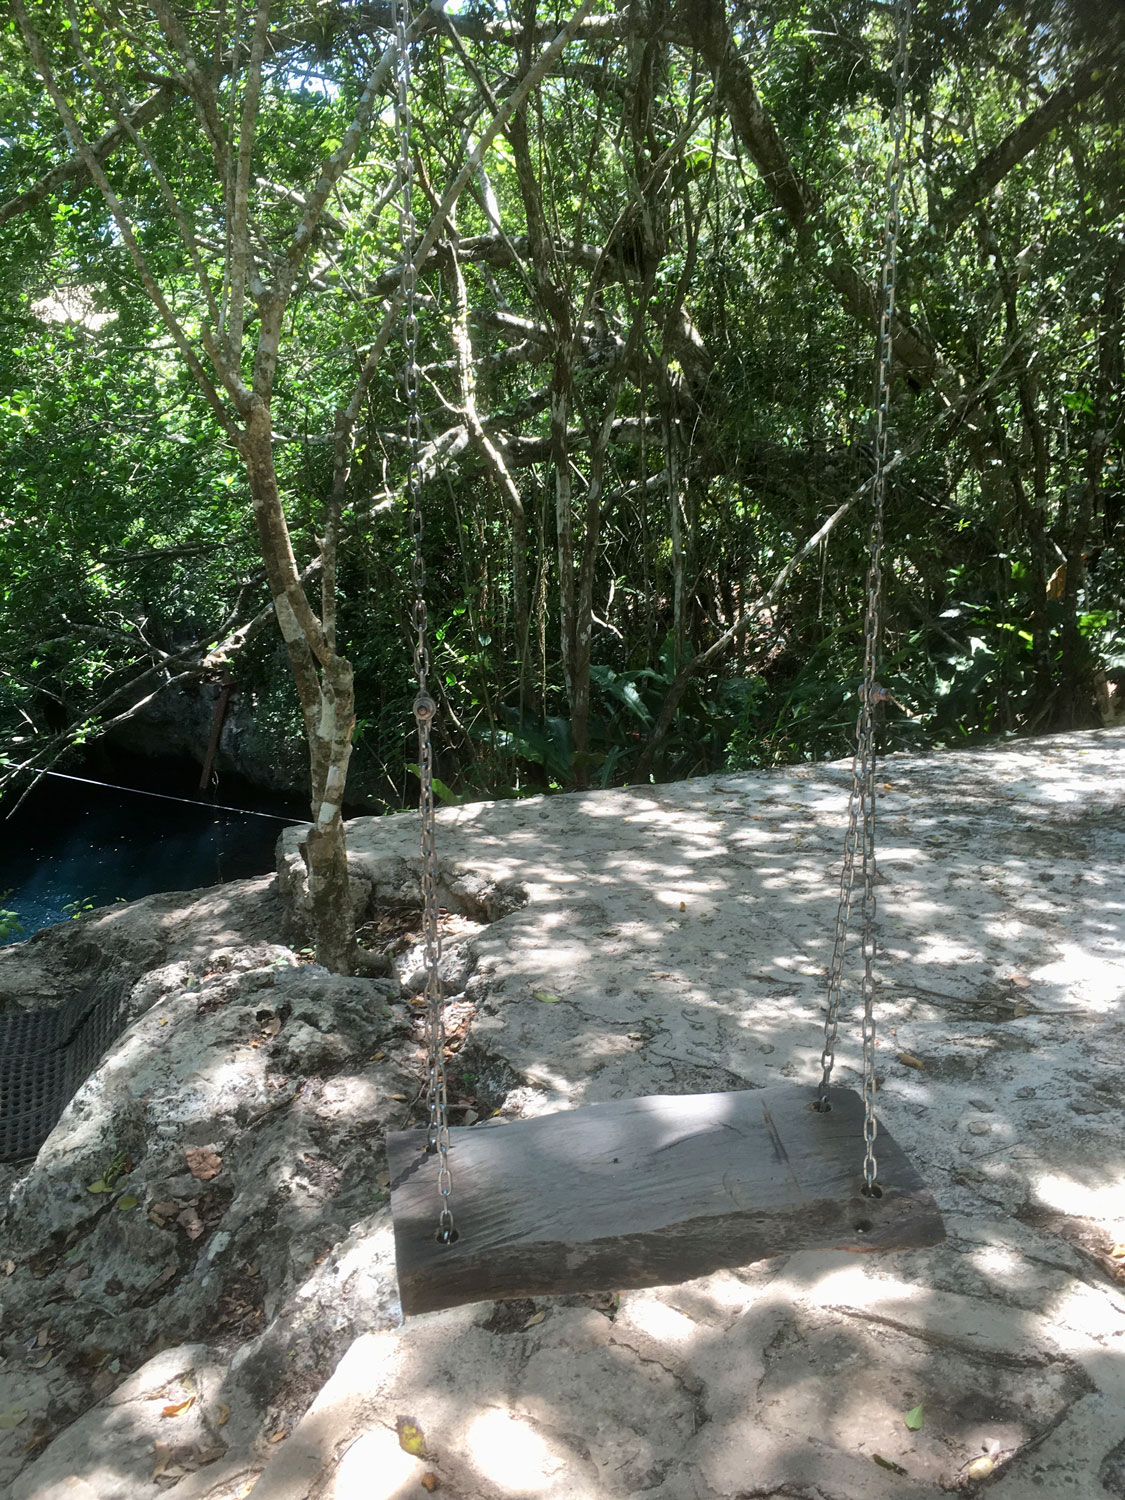 The swing platform at the 'back' of the cenote.